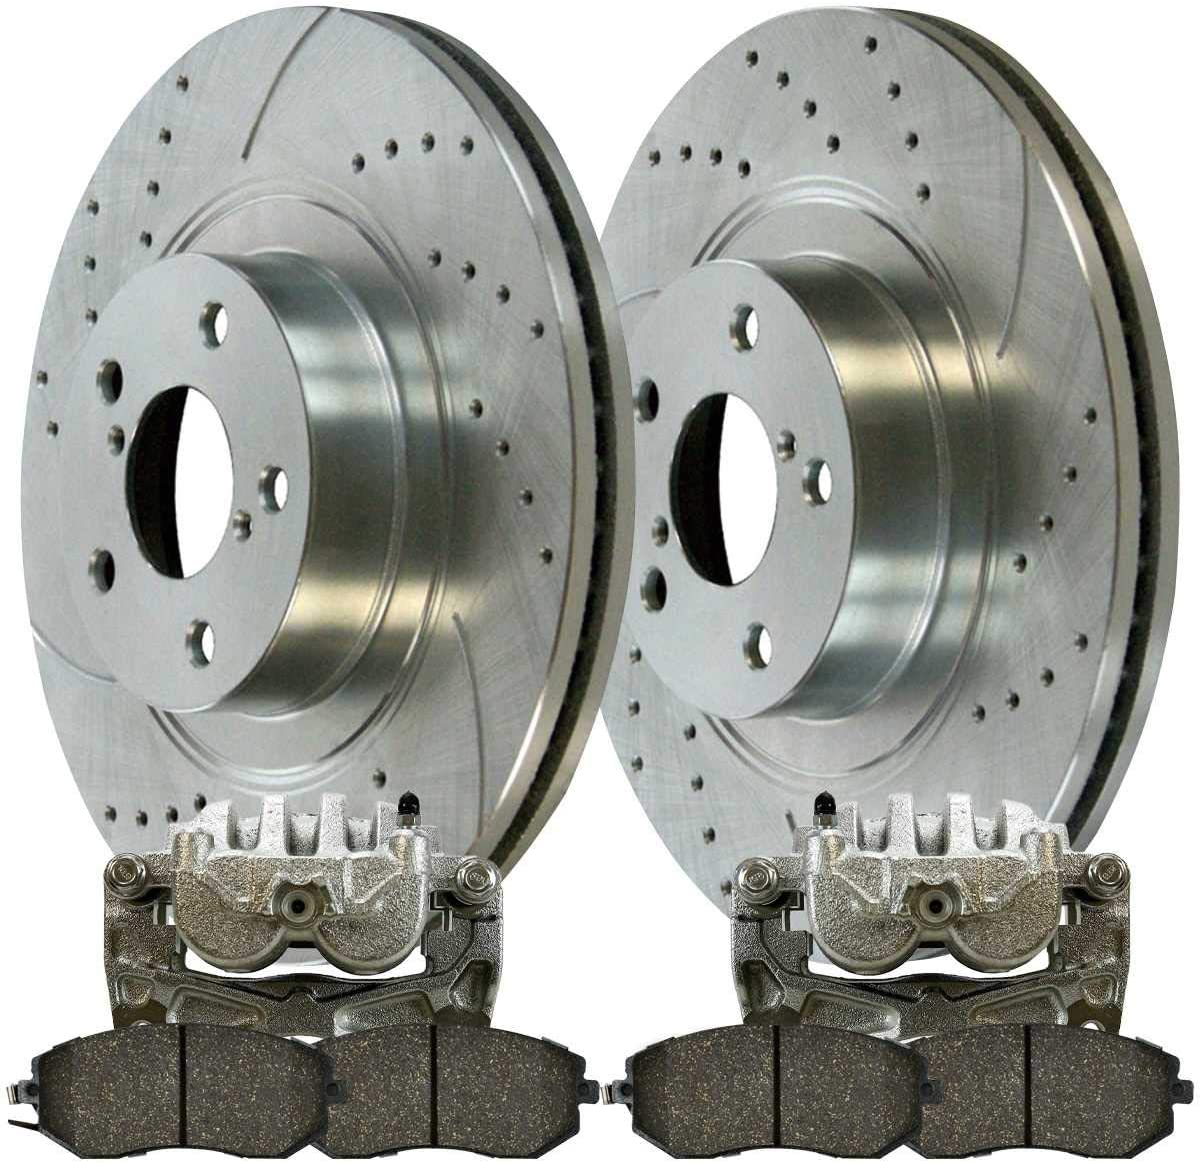 Safety and trust Long Beach Mall AutoShack SRBRPKG00088 Front Drilled Ro Brake Slotted Silver